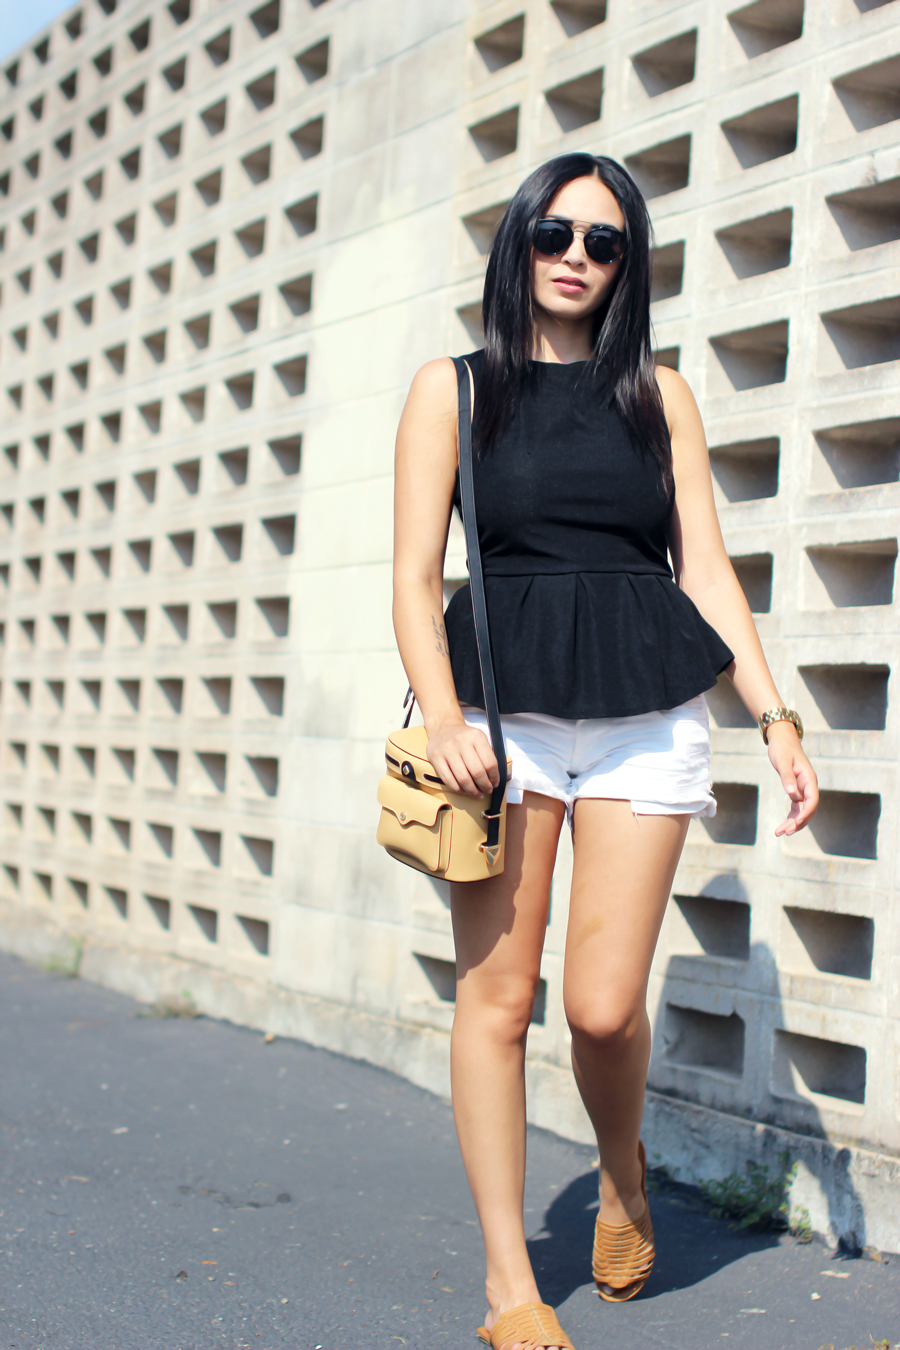 AUSTIN-STYLE-BLOG-PEPLUM-SANDALS-FIXIN-TO-THRILL-NORDSTROM-TRENDS-FW15-SUMMER-TRENDY-CHIC-GLAM-FASHION-OUTFIT-TEXAS-BLACK-HAIR-3